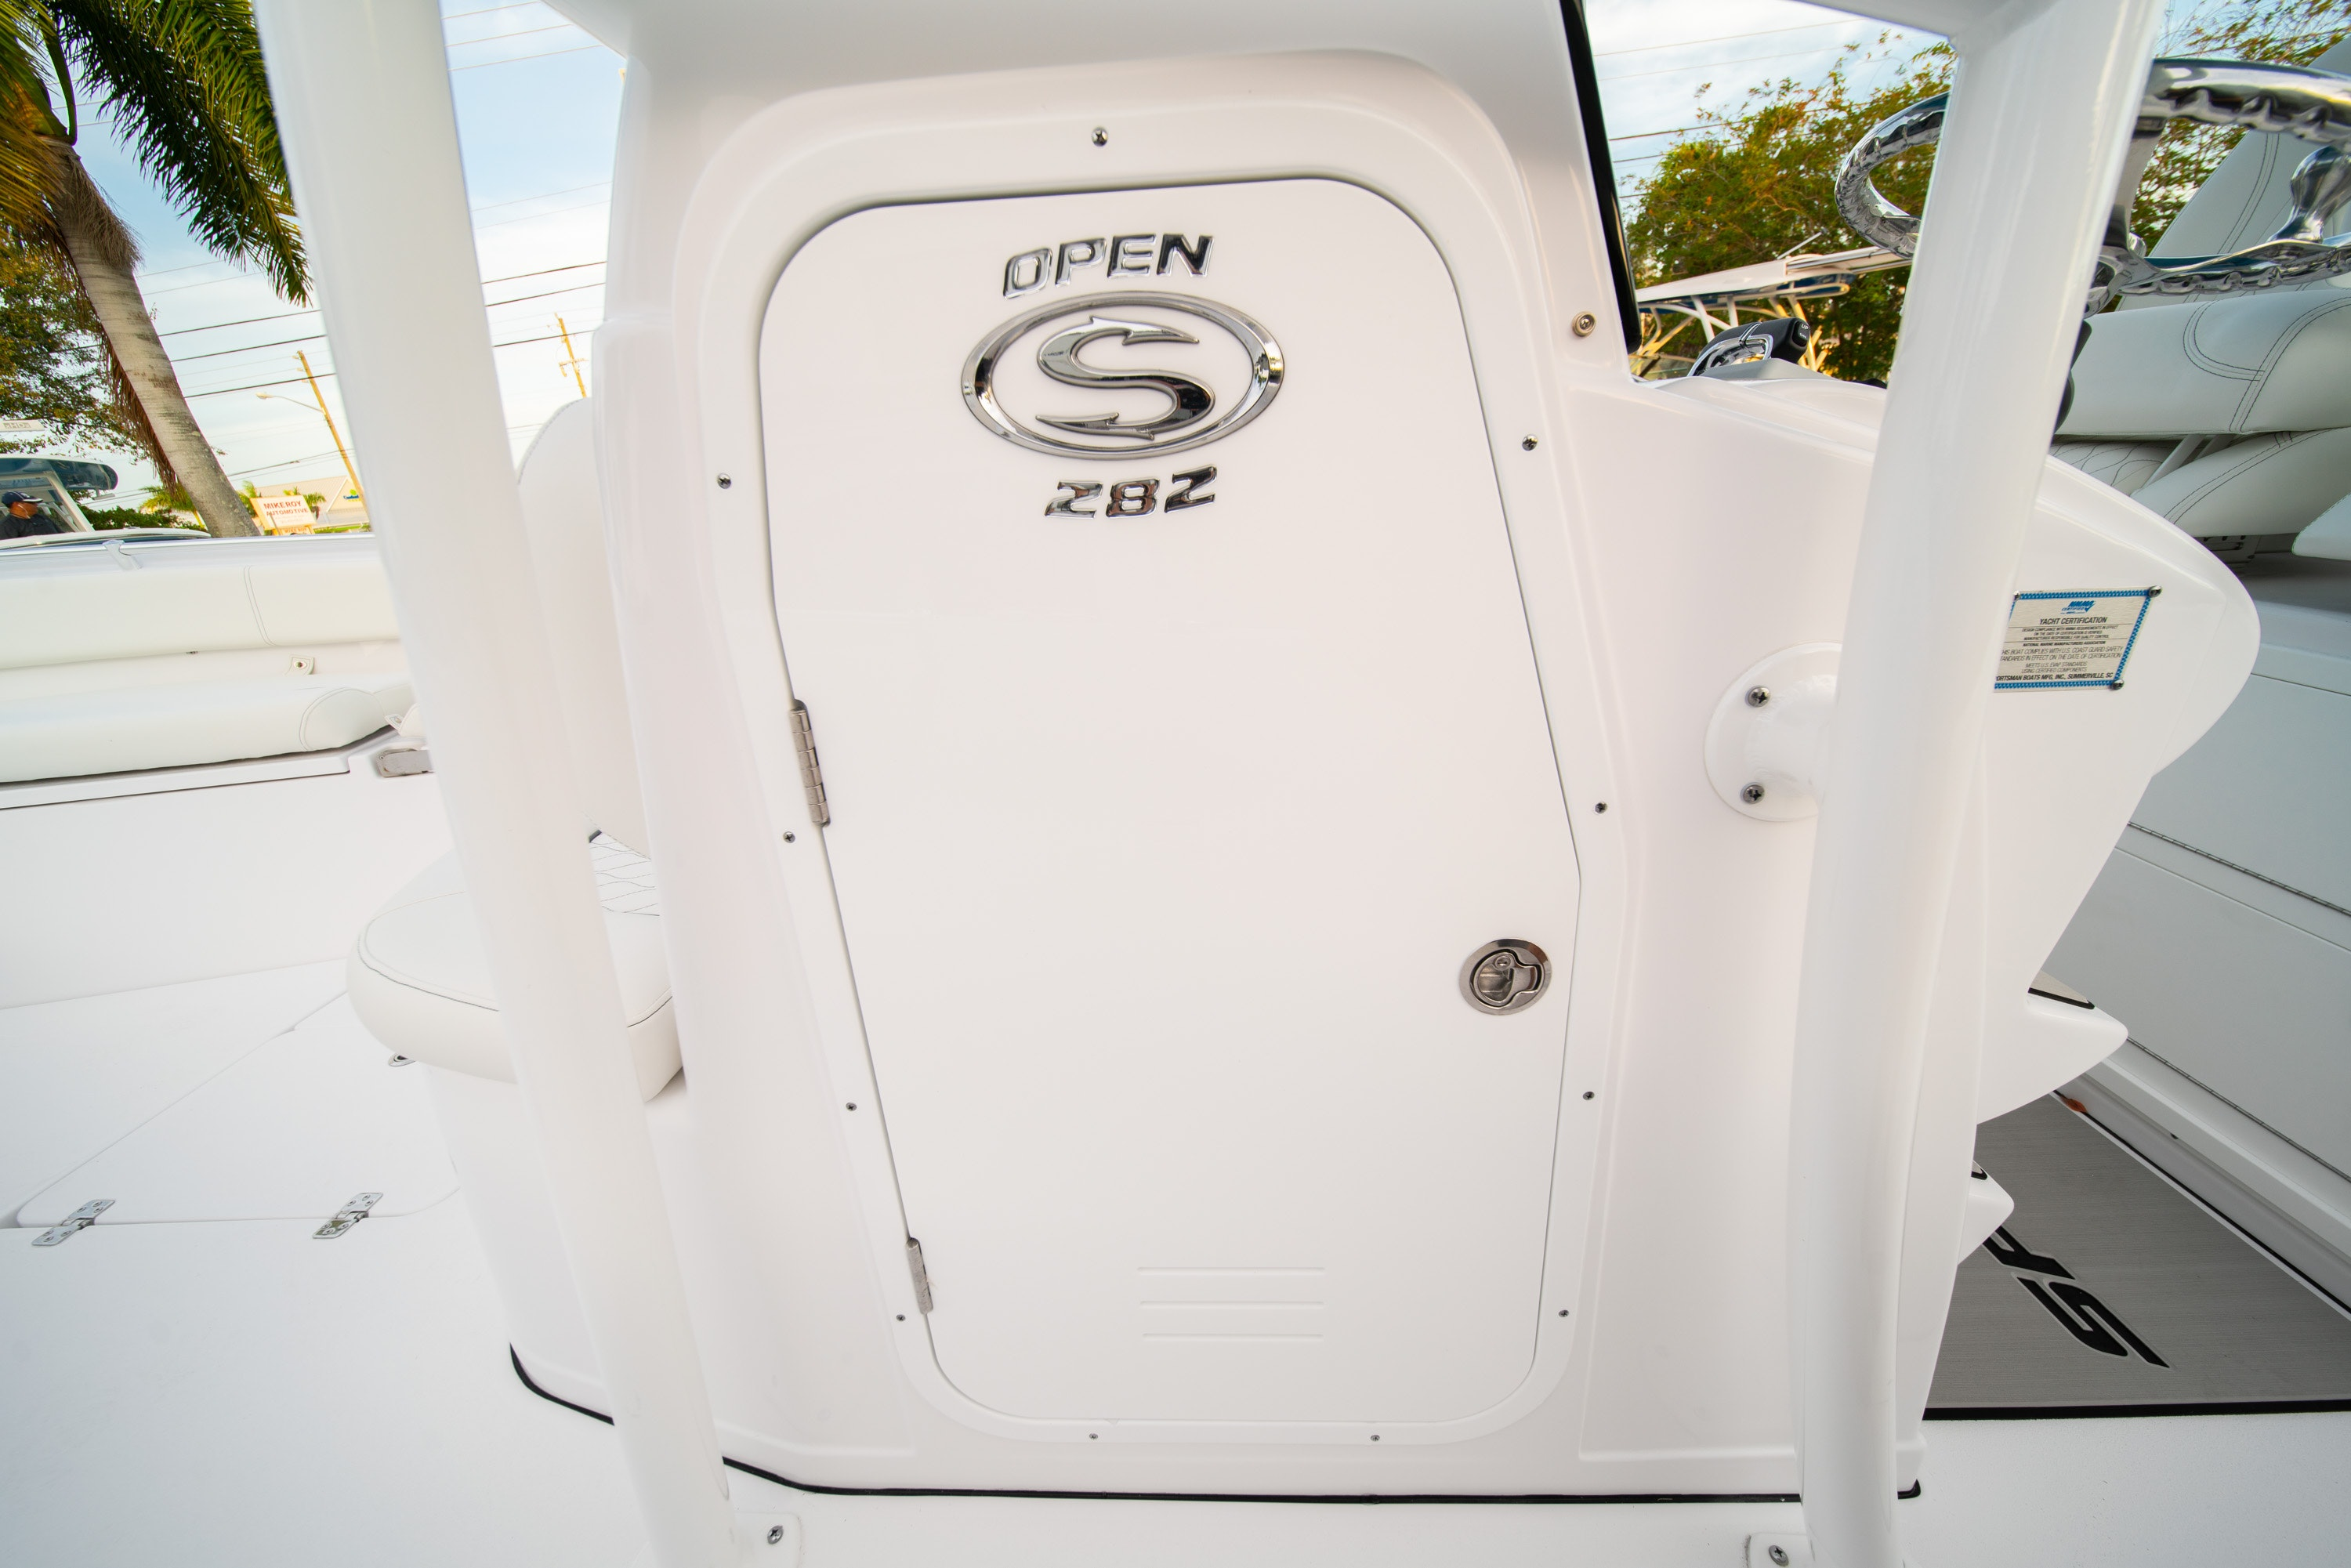 Thumbnail 42 for New 2020 Sportsman Open 282 Center Console boat for sale in West Palm Beach, FL